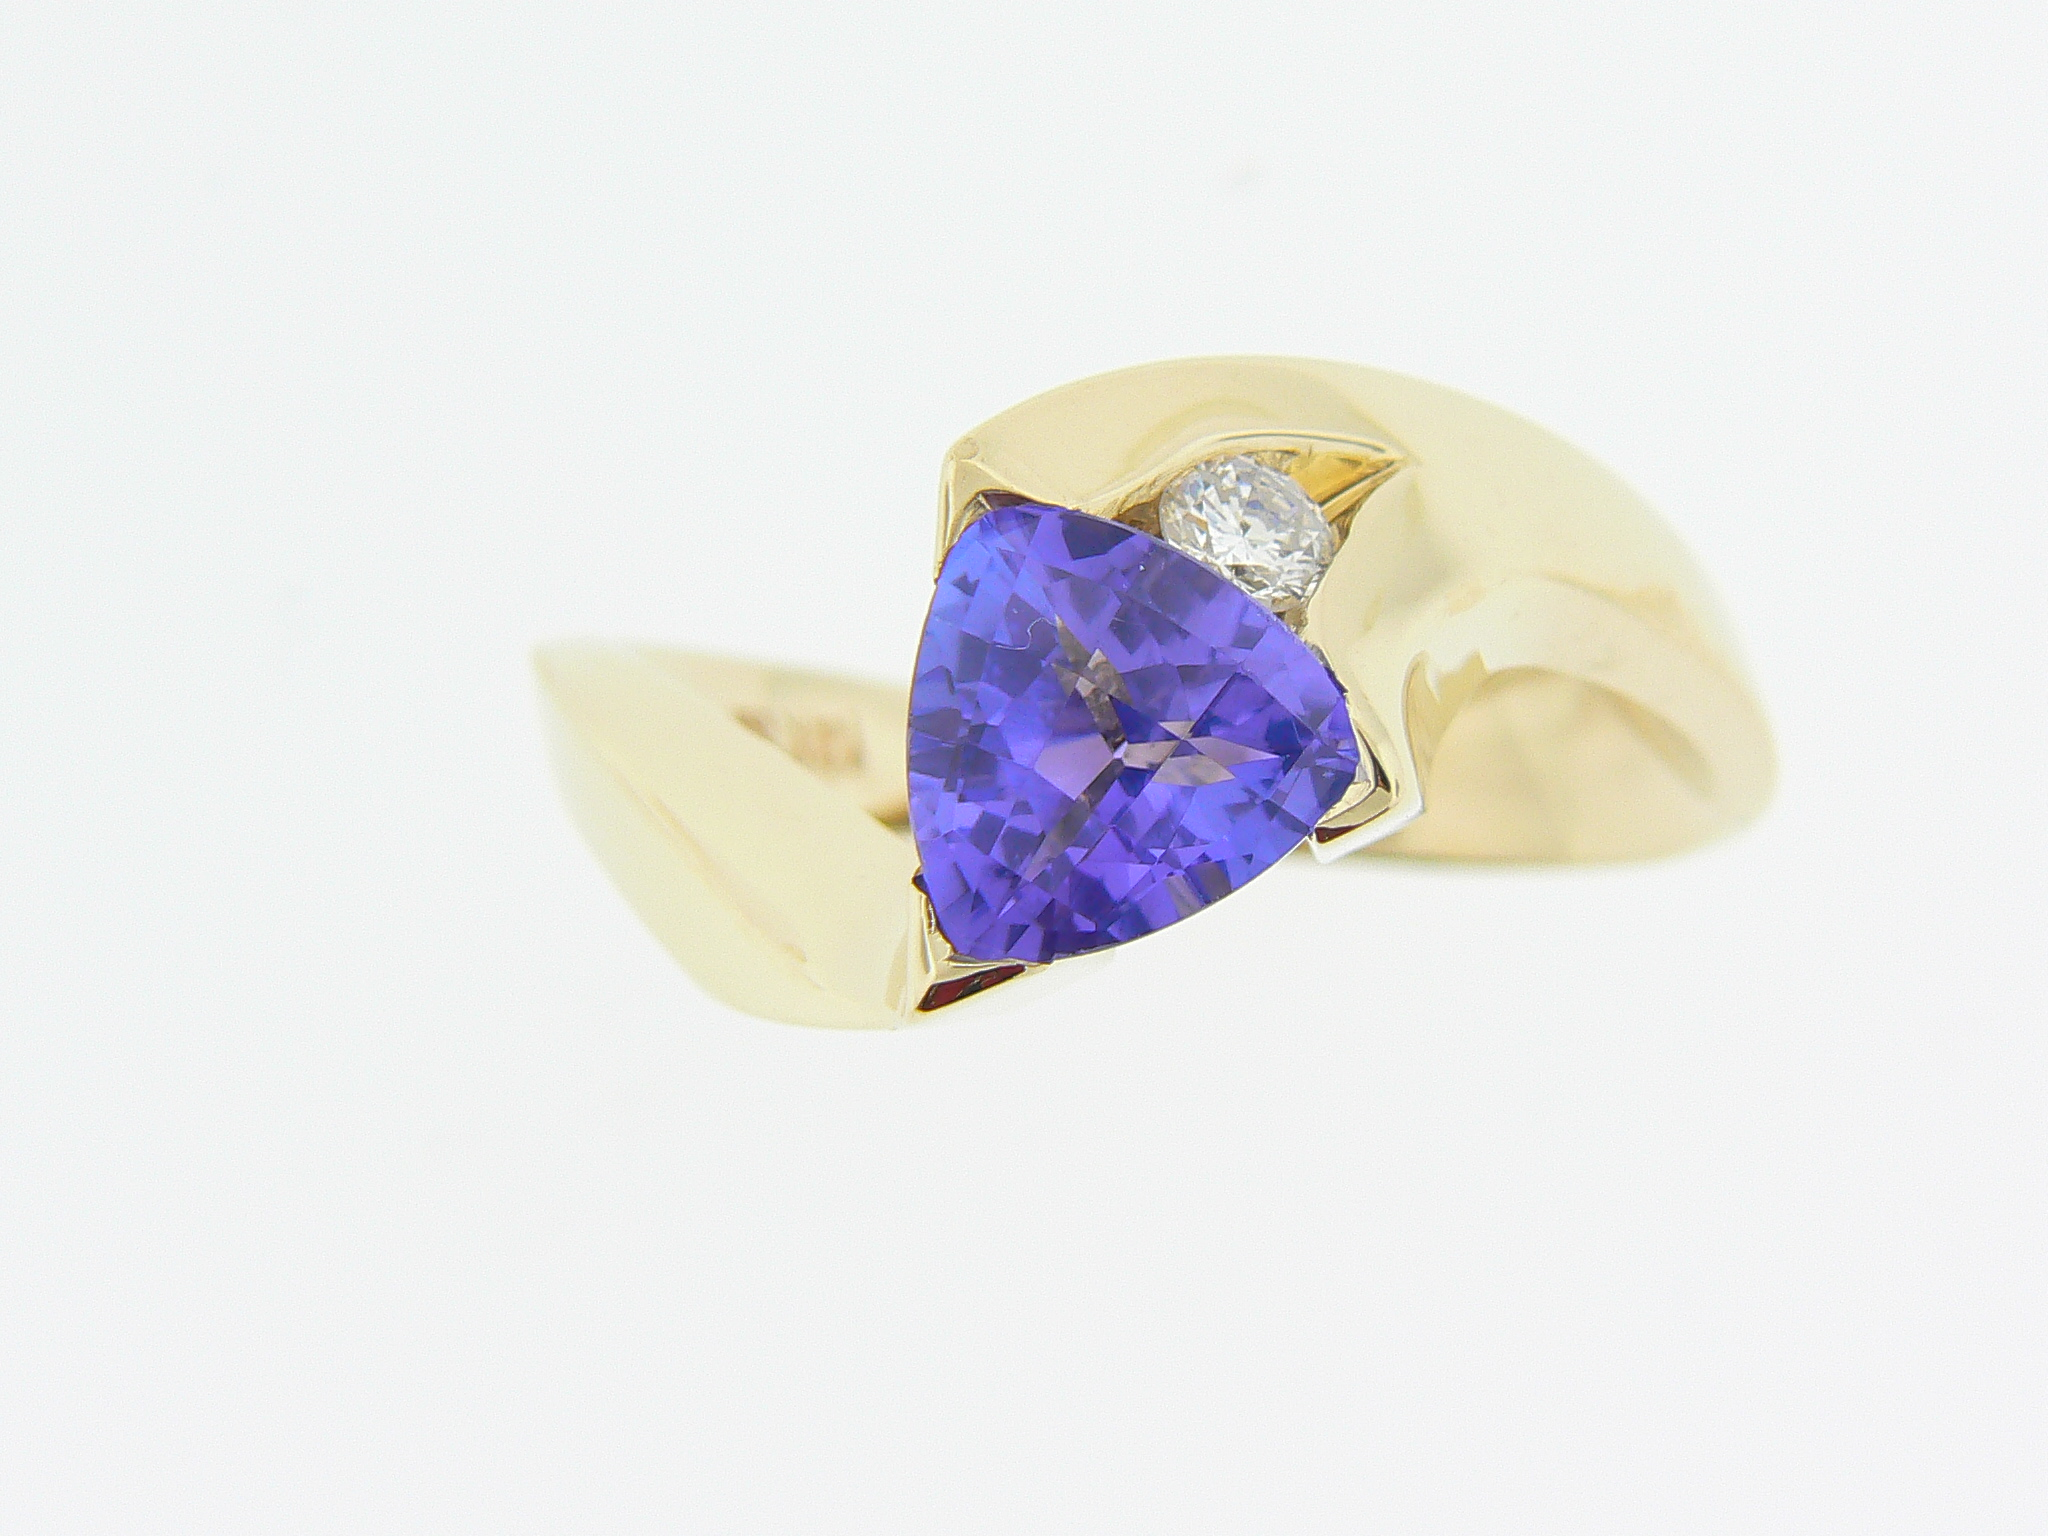 Tanzanite nested next to a diamonds set in 14KT yellow gold.